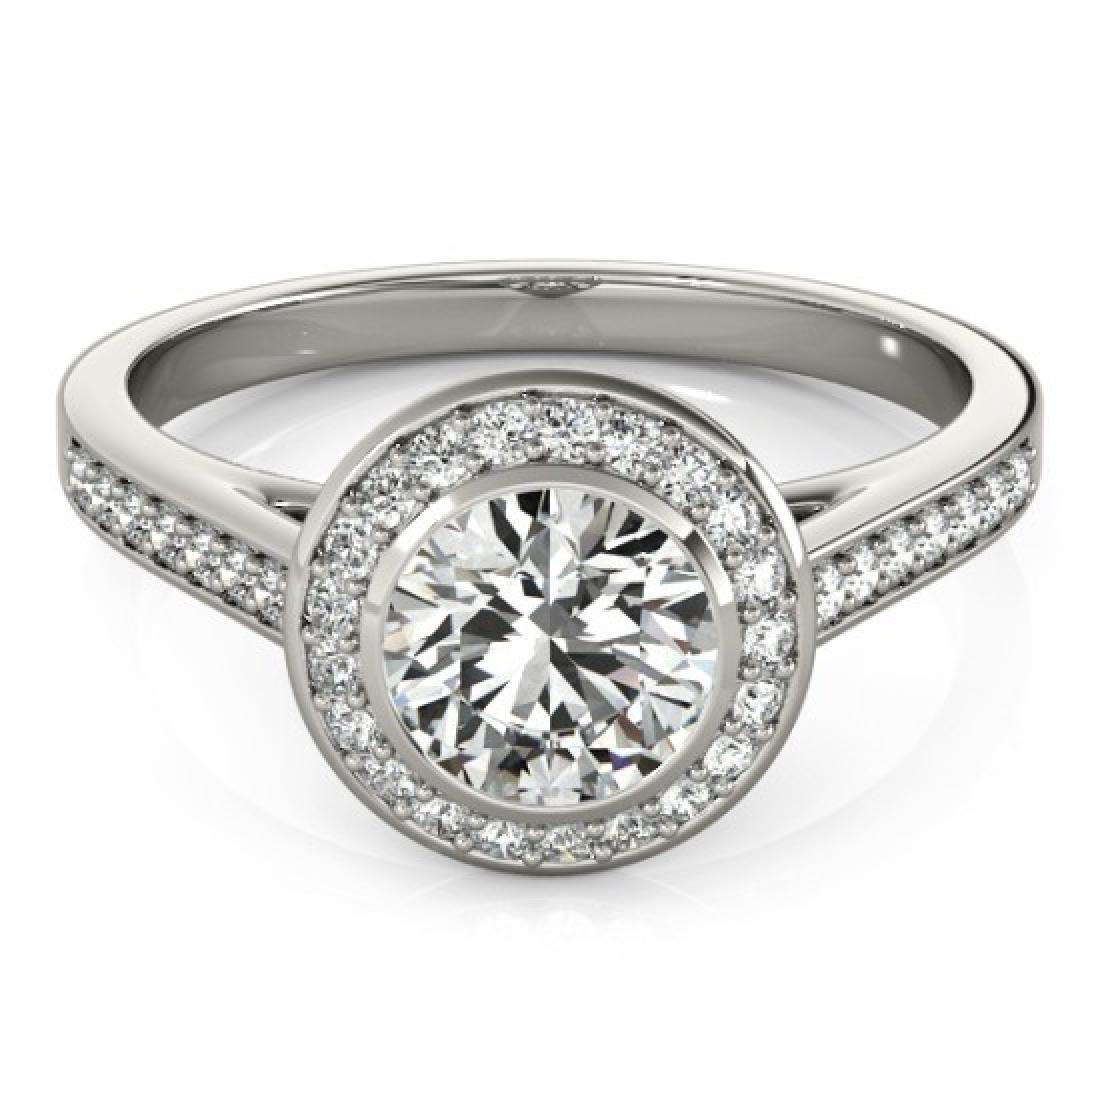 1.3 CTW Certified VS/SI Diamond Solitaire Halo Ring 18K